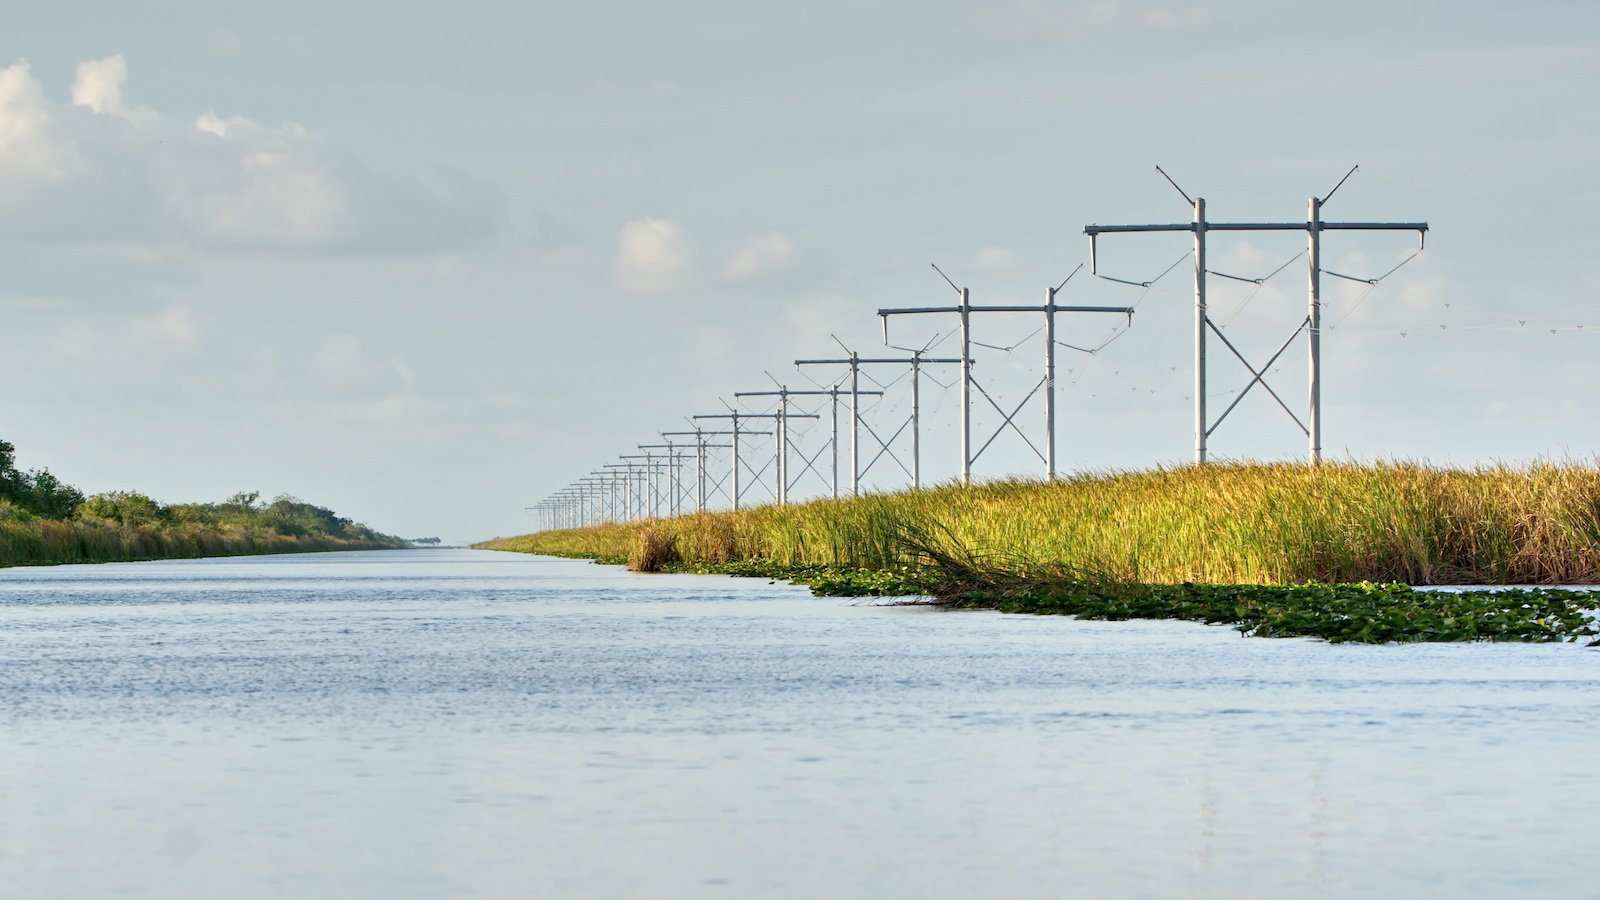 a photo of the Florida everglades with a wide expanse of blue, calm waters on the left, and a series of crisscrossing power lines on the right.